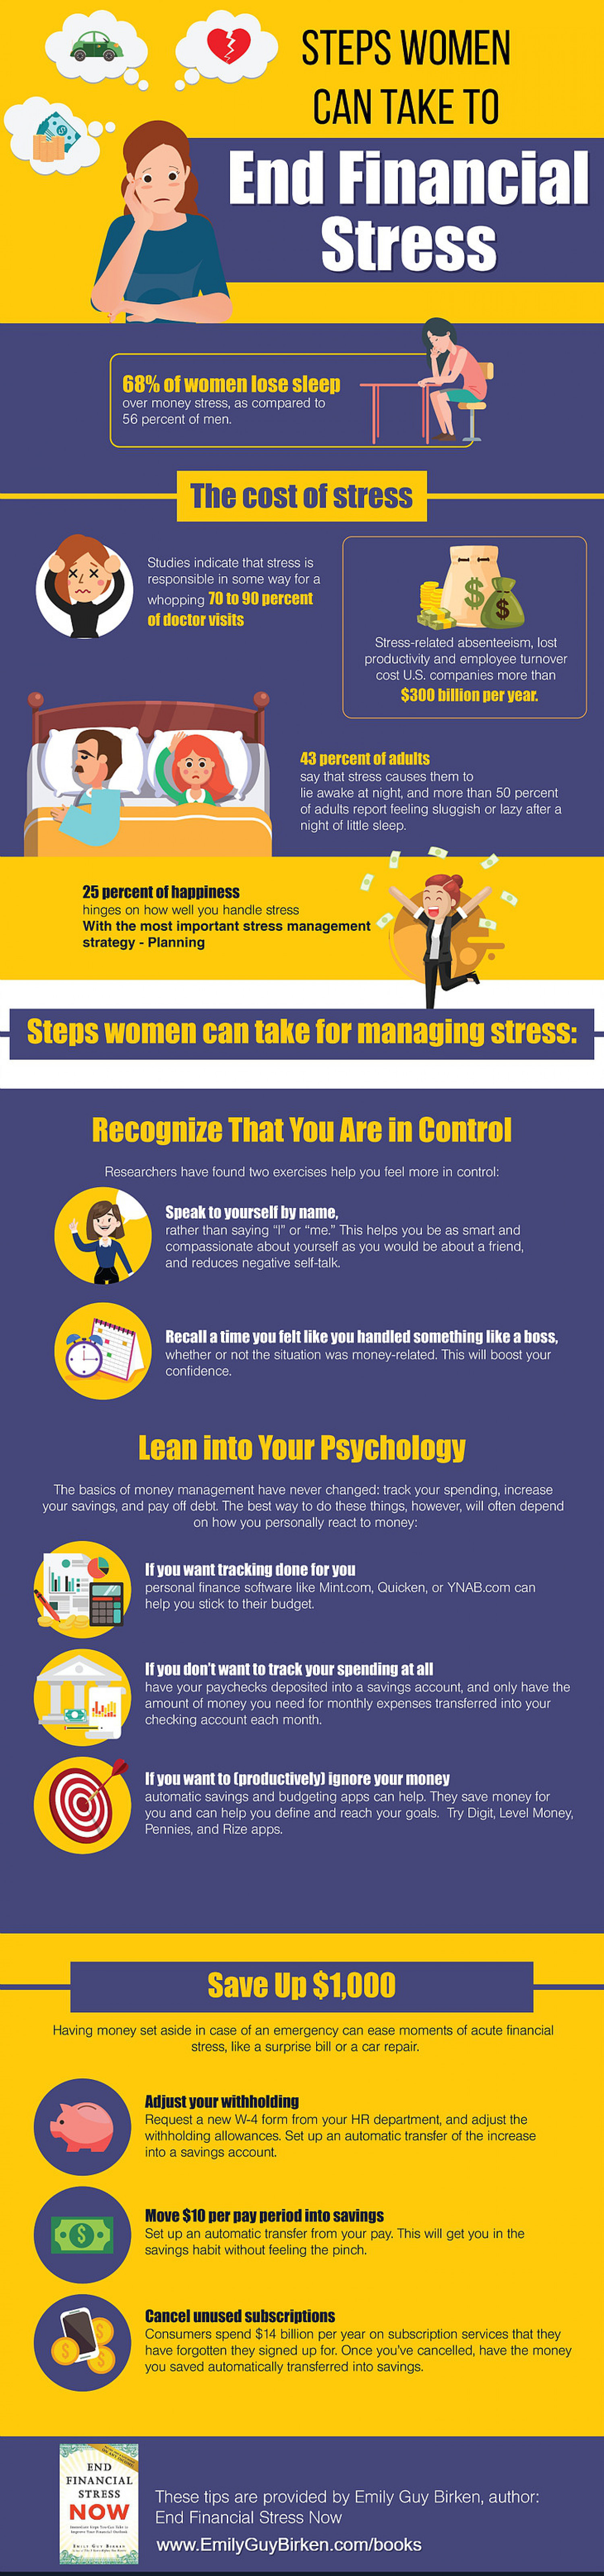 Steps to End Financial Stress Now Infographic